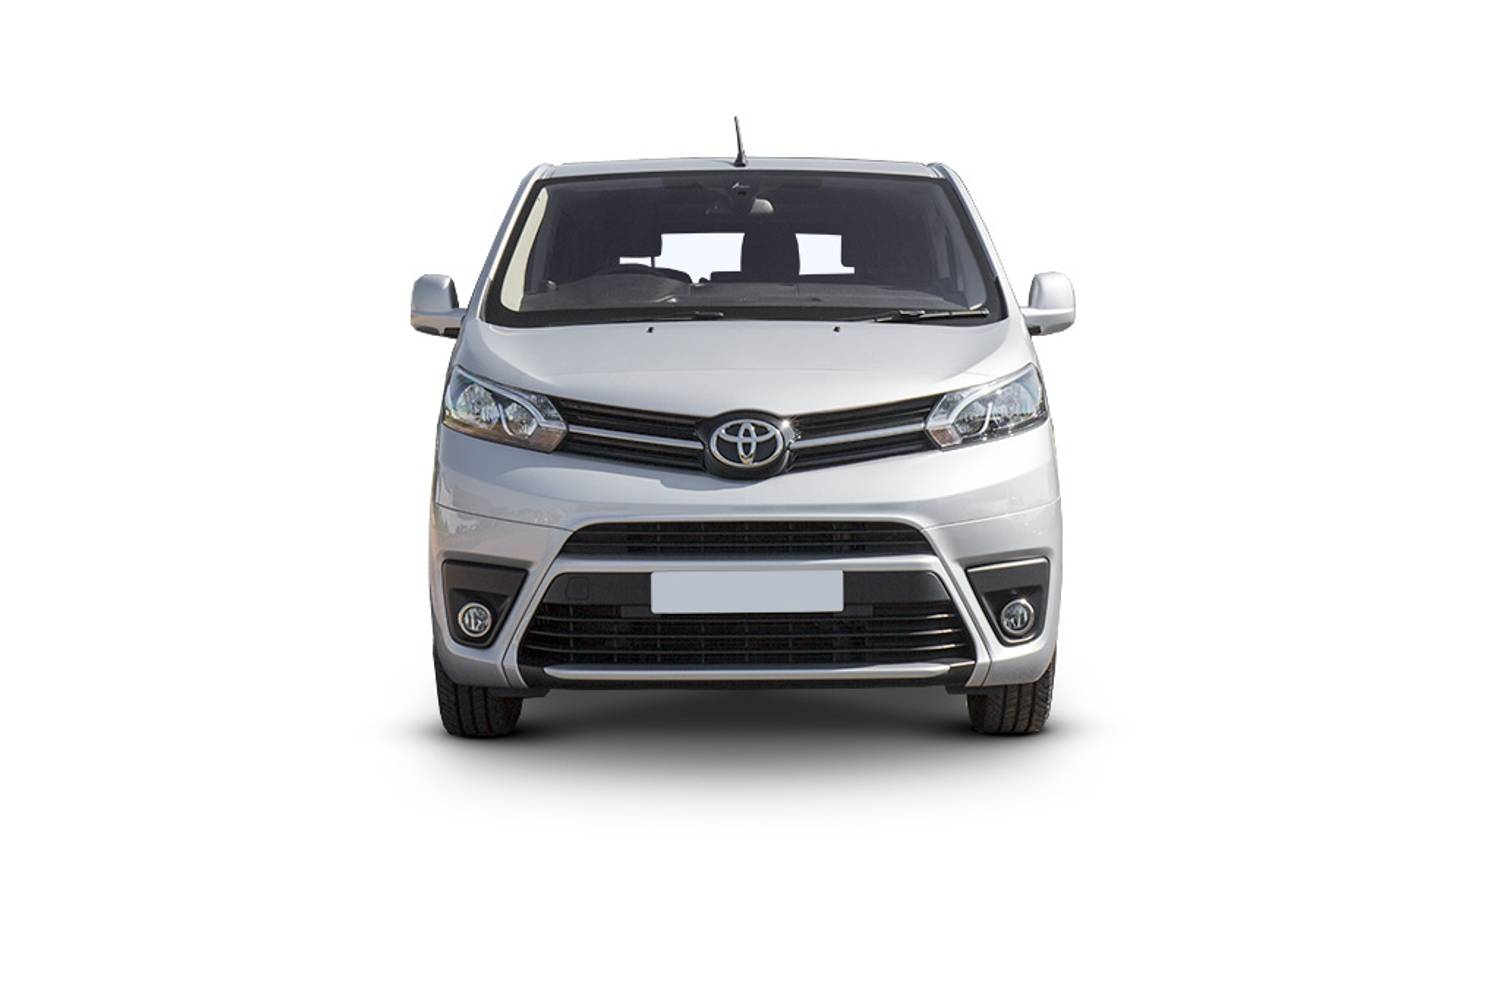 new toyota proace verso diesel estate 2 0d shuttle medium 5 door nav 2016 for sale. Black Bedroom Furniture Sets. Home Design Ideas